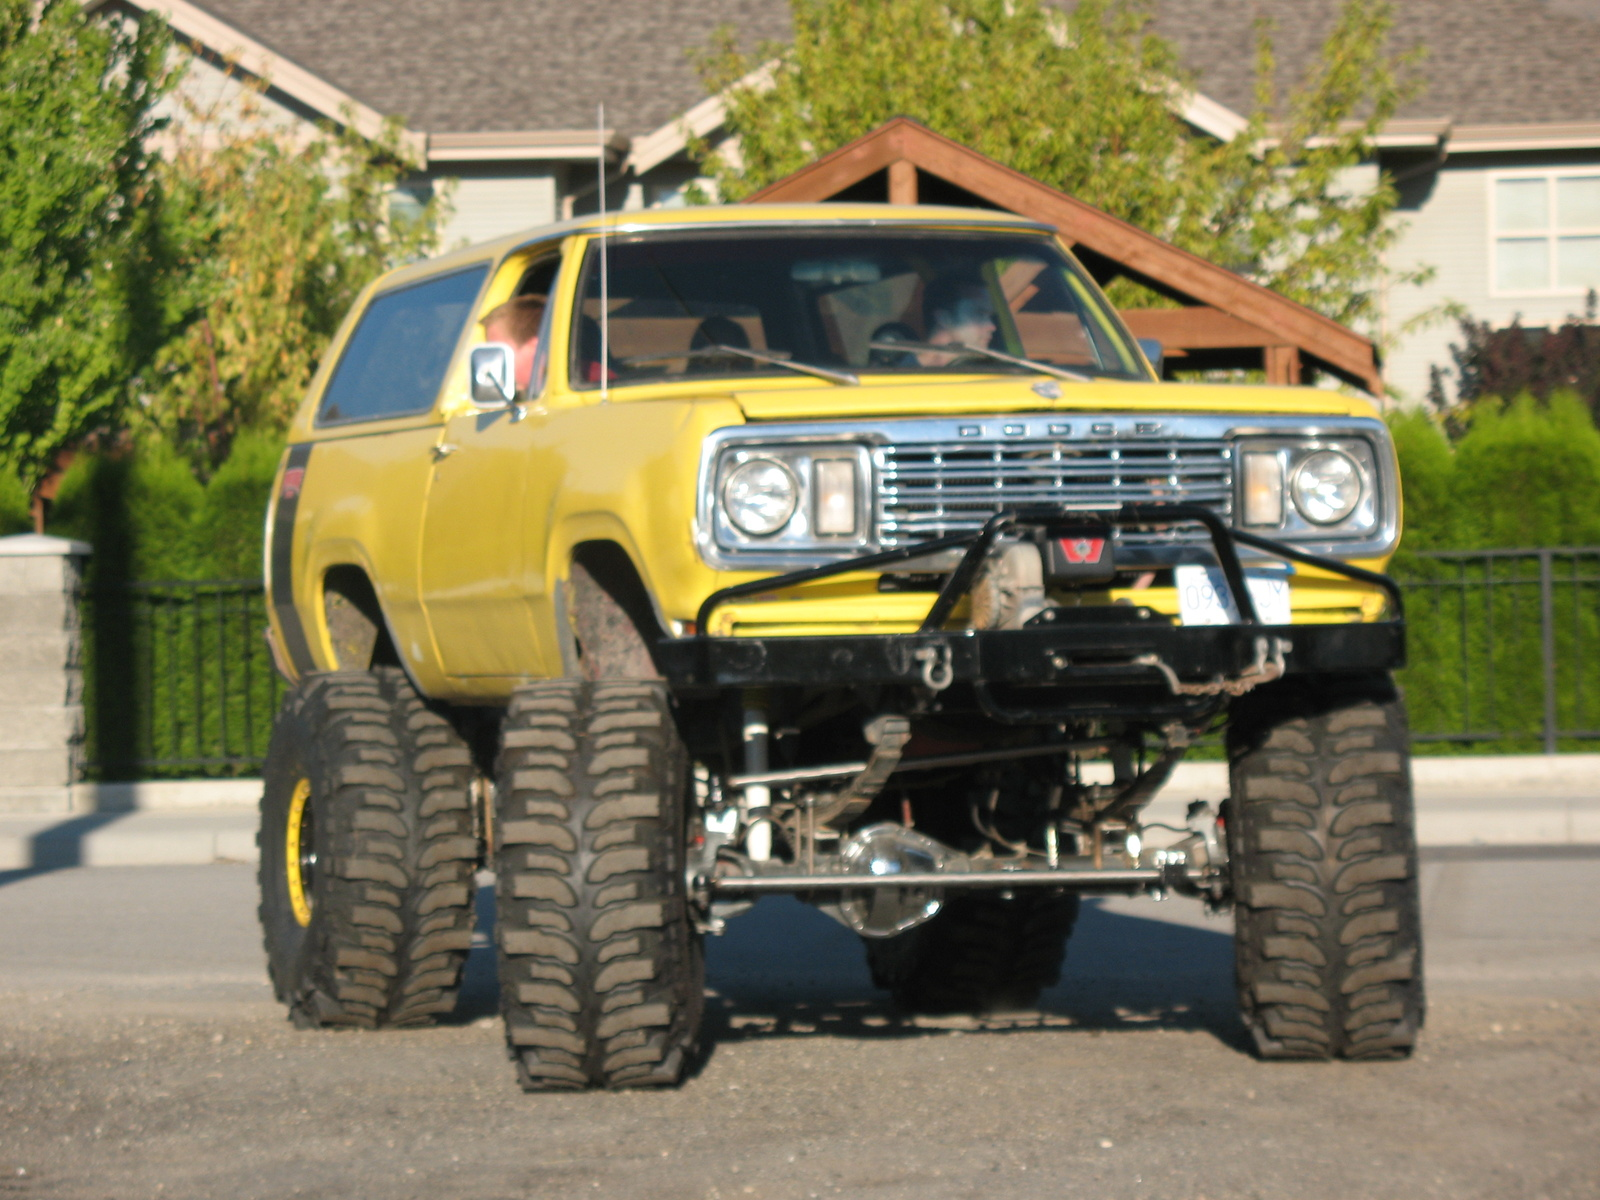 1977 Dodge Ramcharger - Pictures - 1977 Dodge Ramcharger picture ...